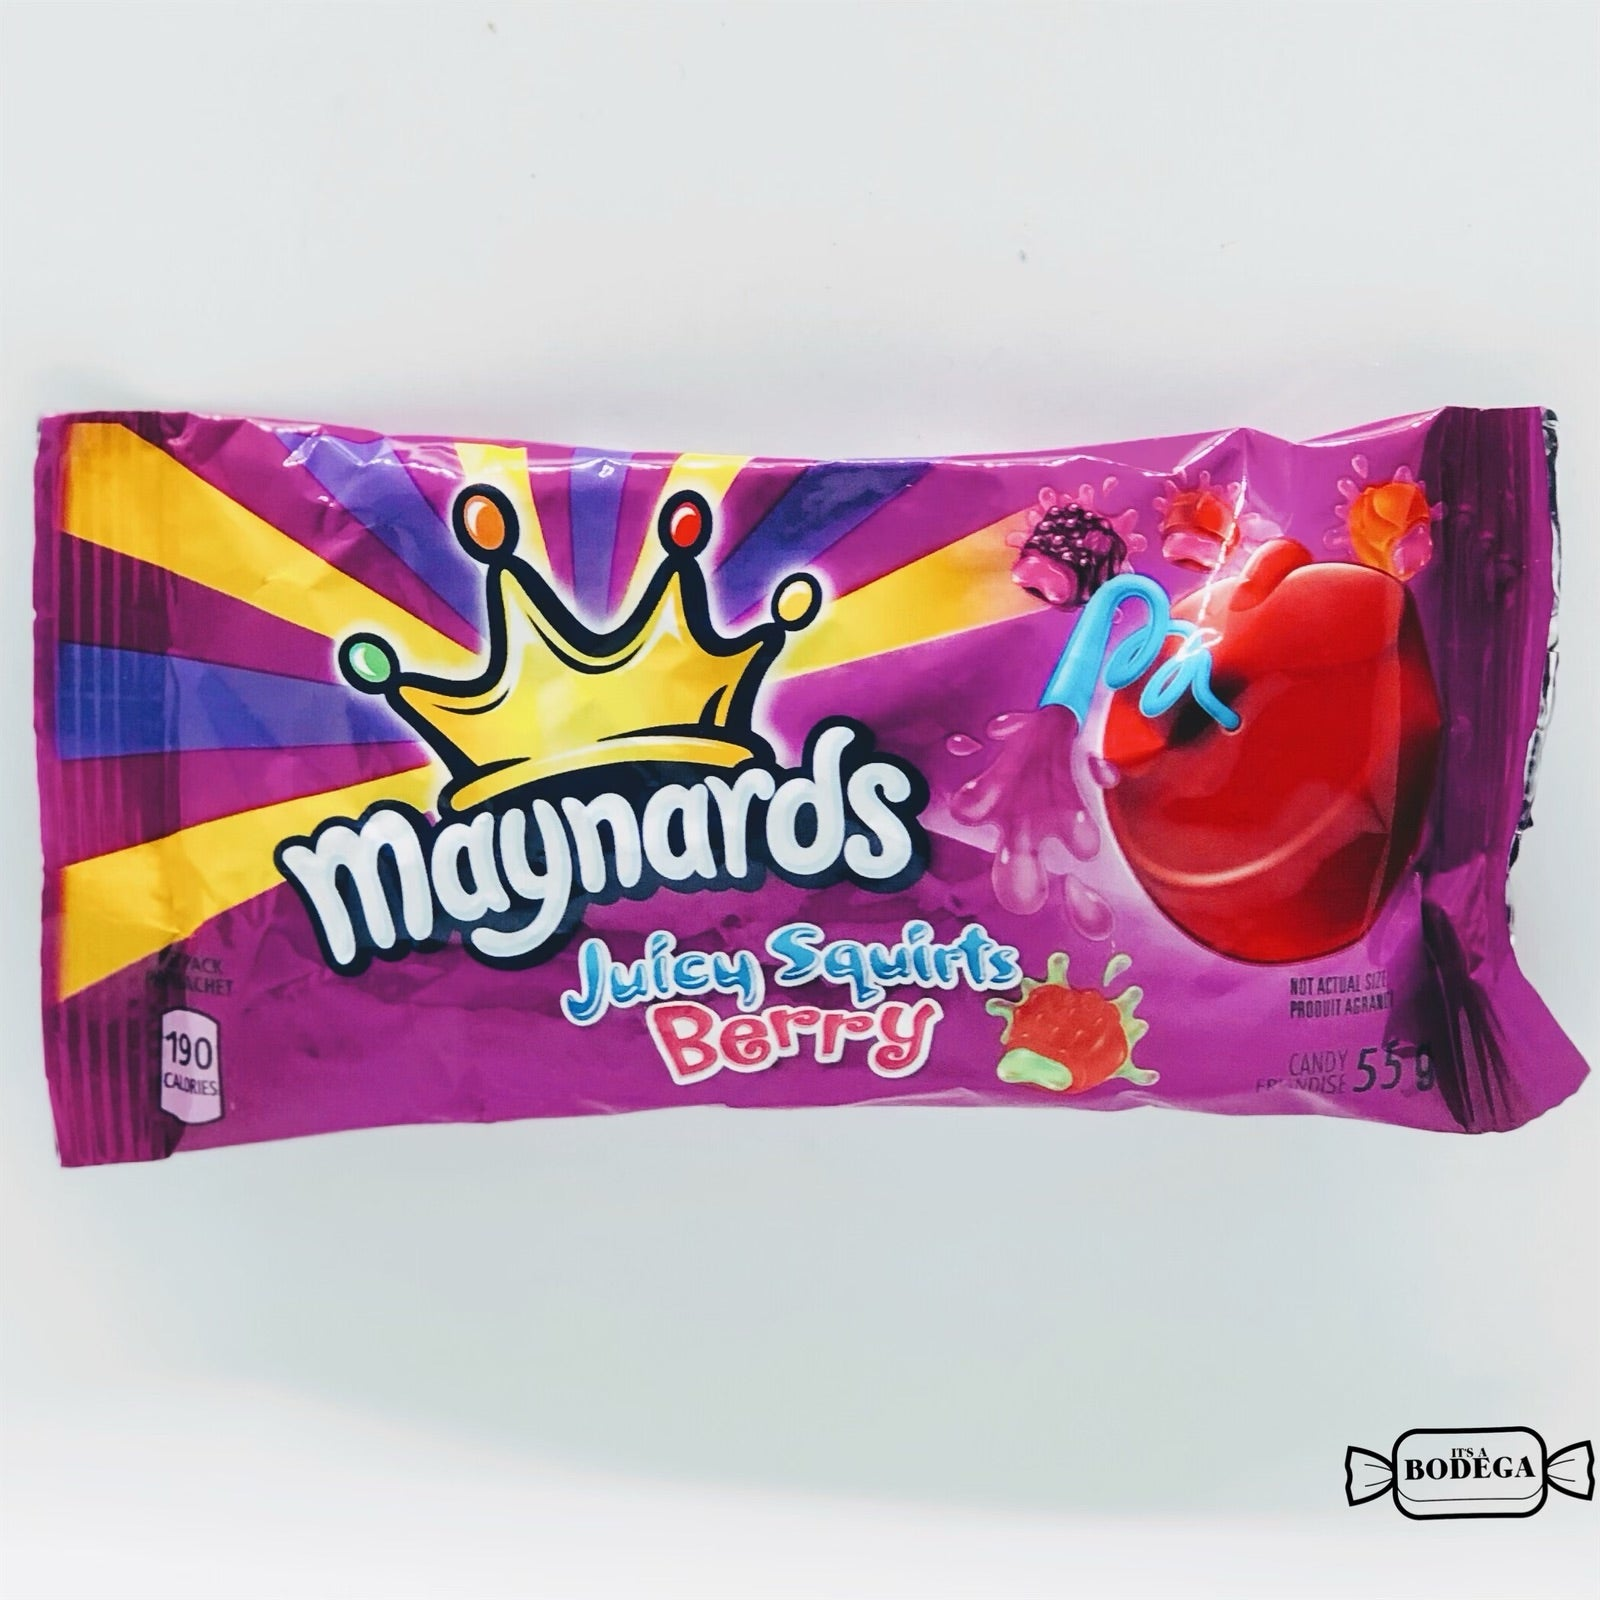 Maynards Juicy Squirts Berry